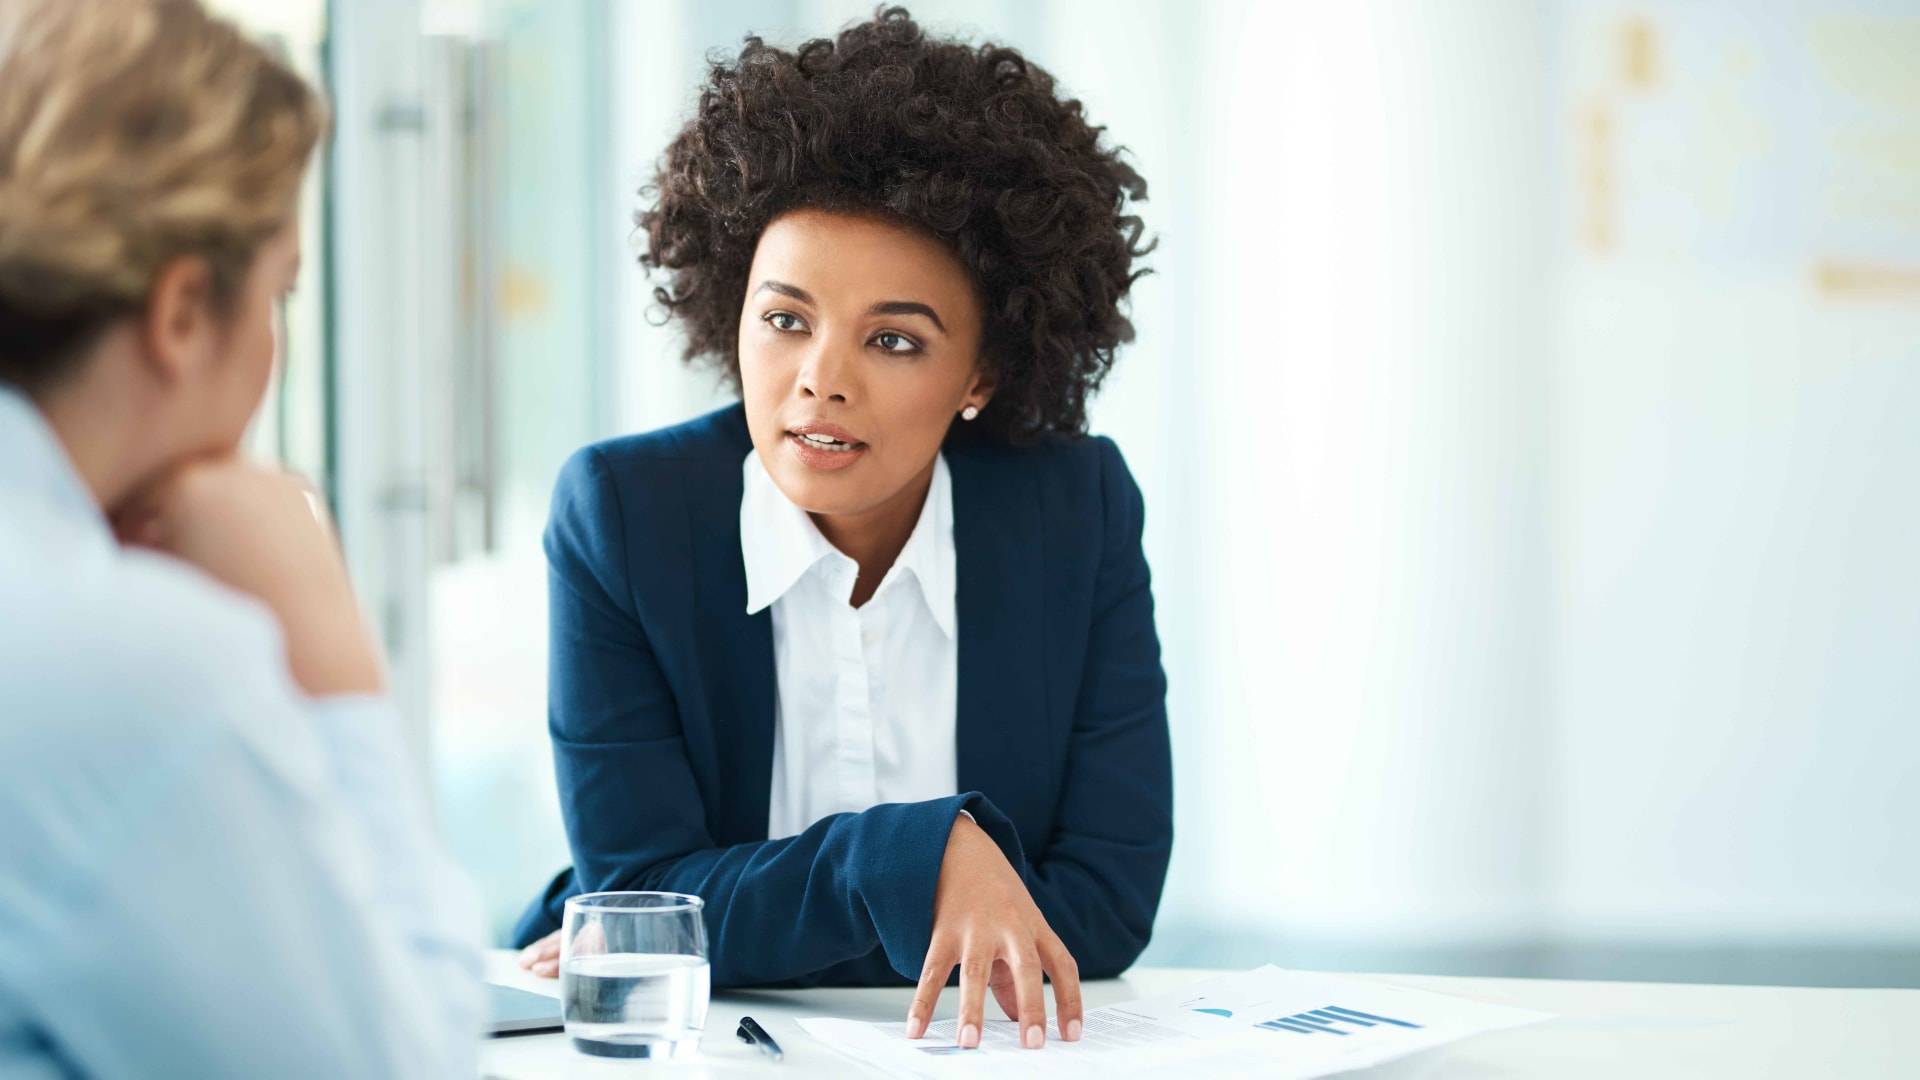 The 5 Unwritten Rules of Hiring: The Effective Leader's Guide to Hiring New Employees